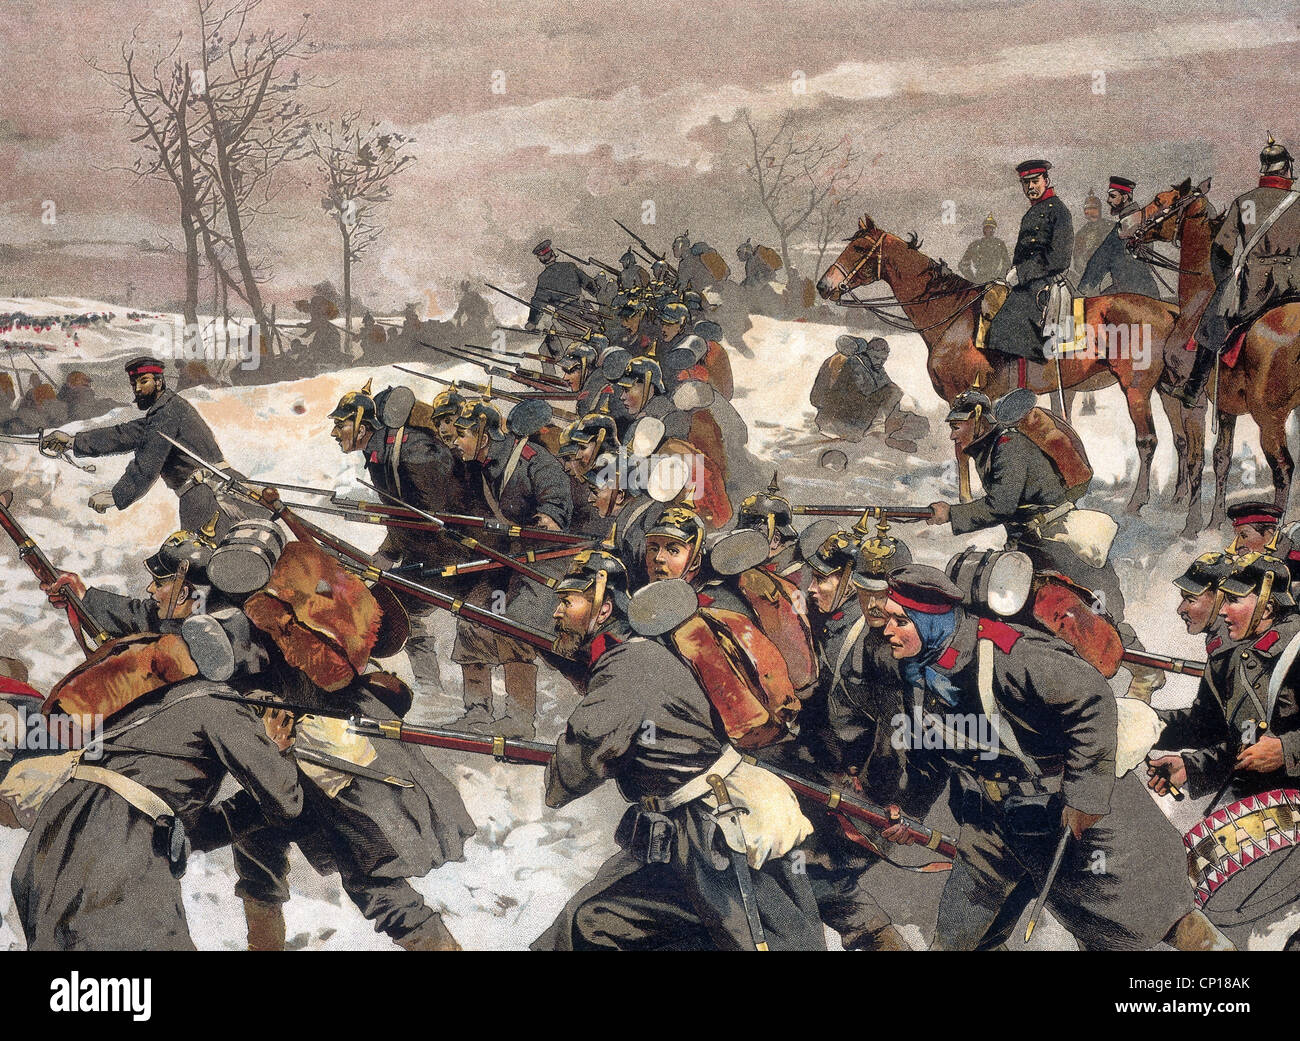 evants, Franco-Prussian War 1870 - 1871, Battle at the Lisaine, 15.- 17.1.1871, charde of Baden infantry, chromolithograph - Stock Image